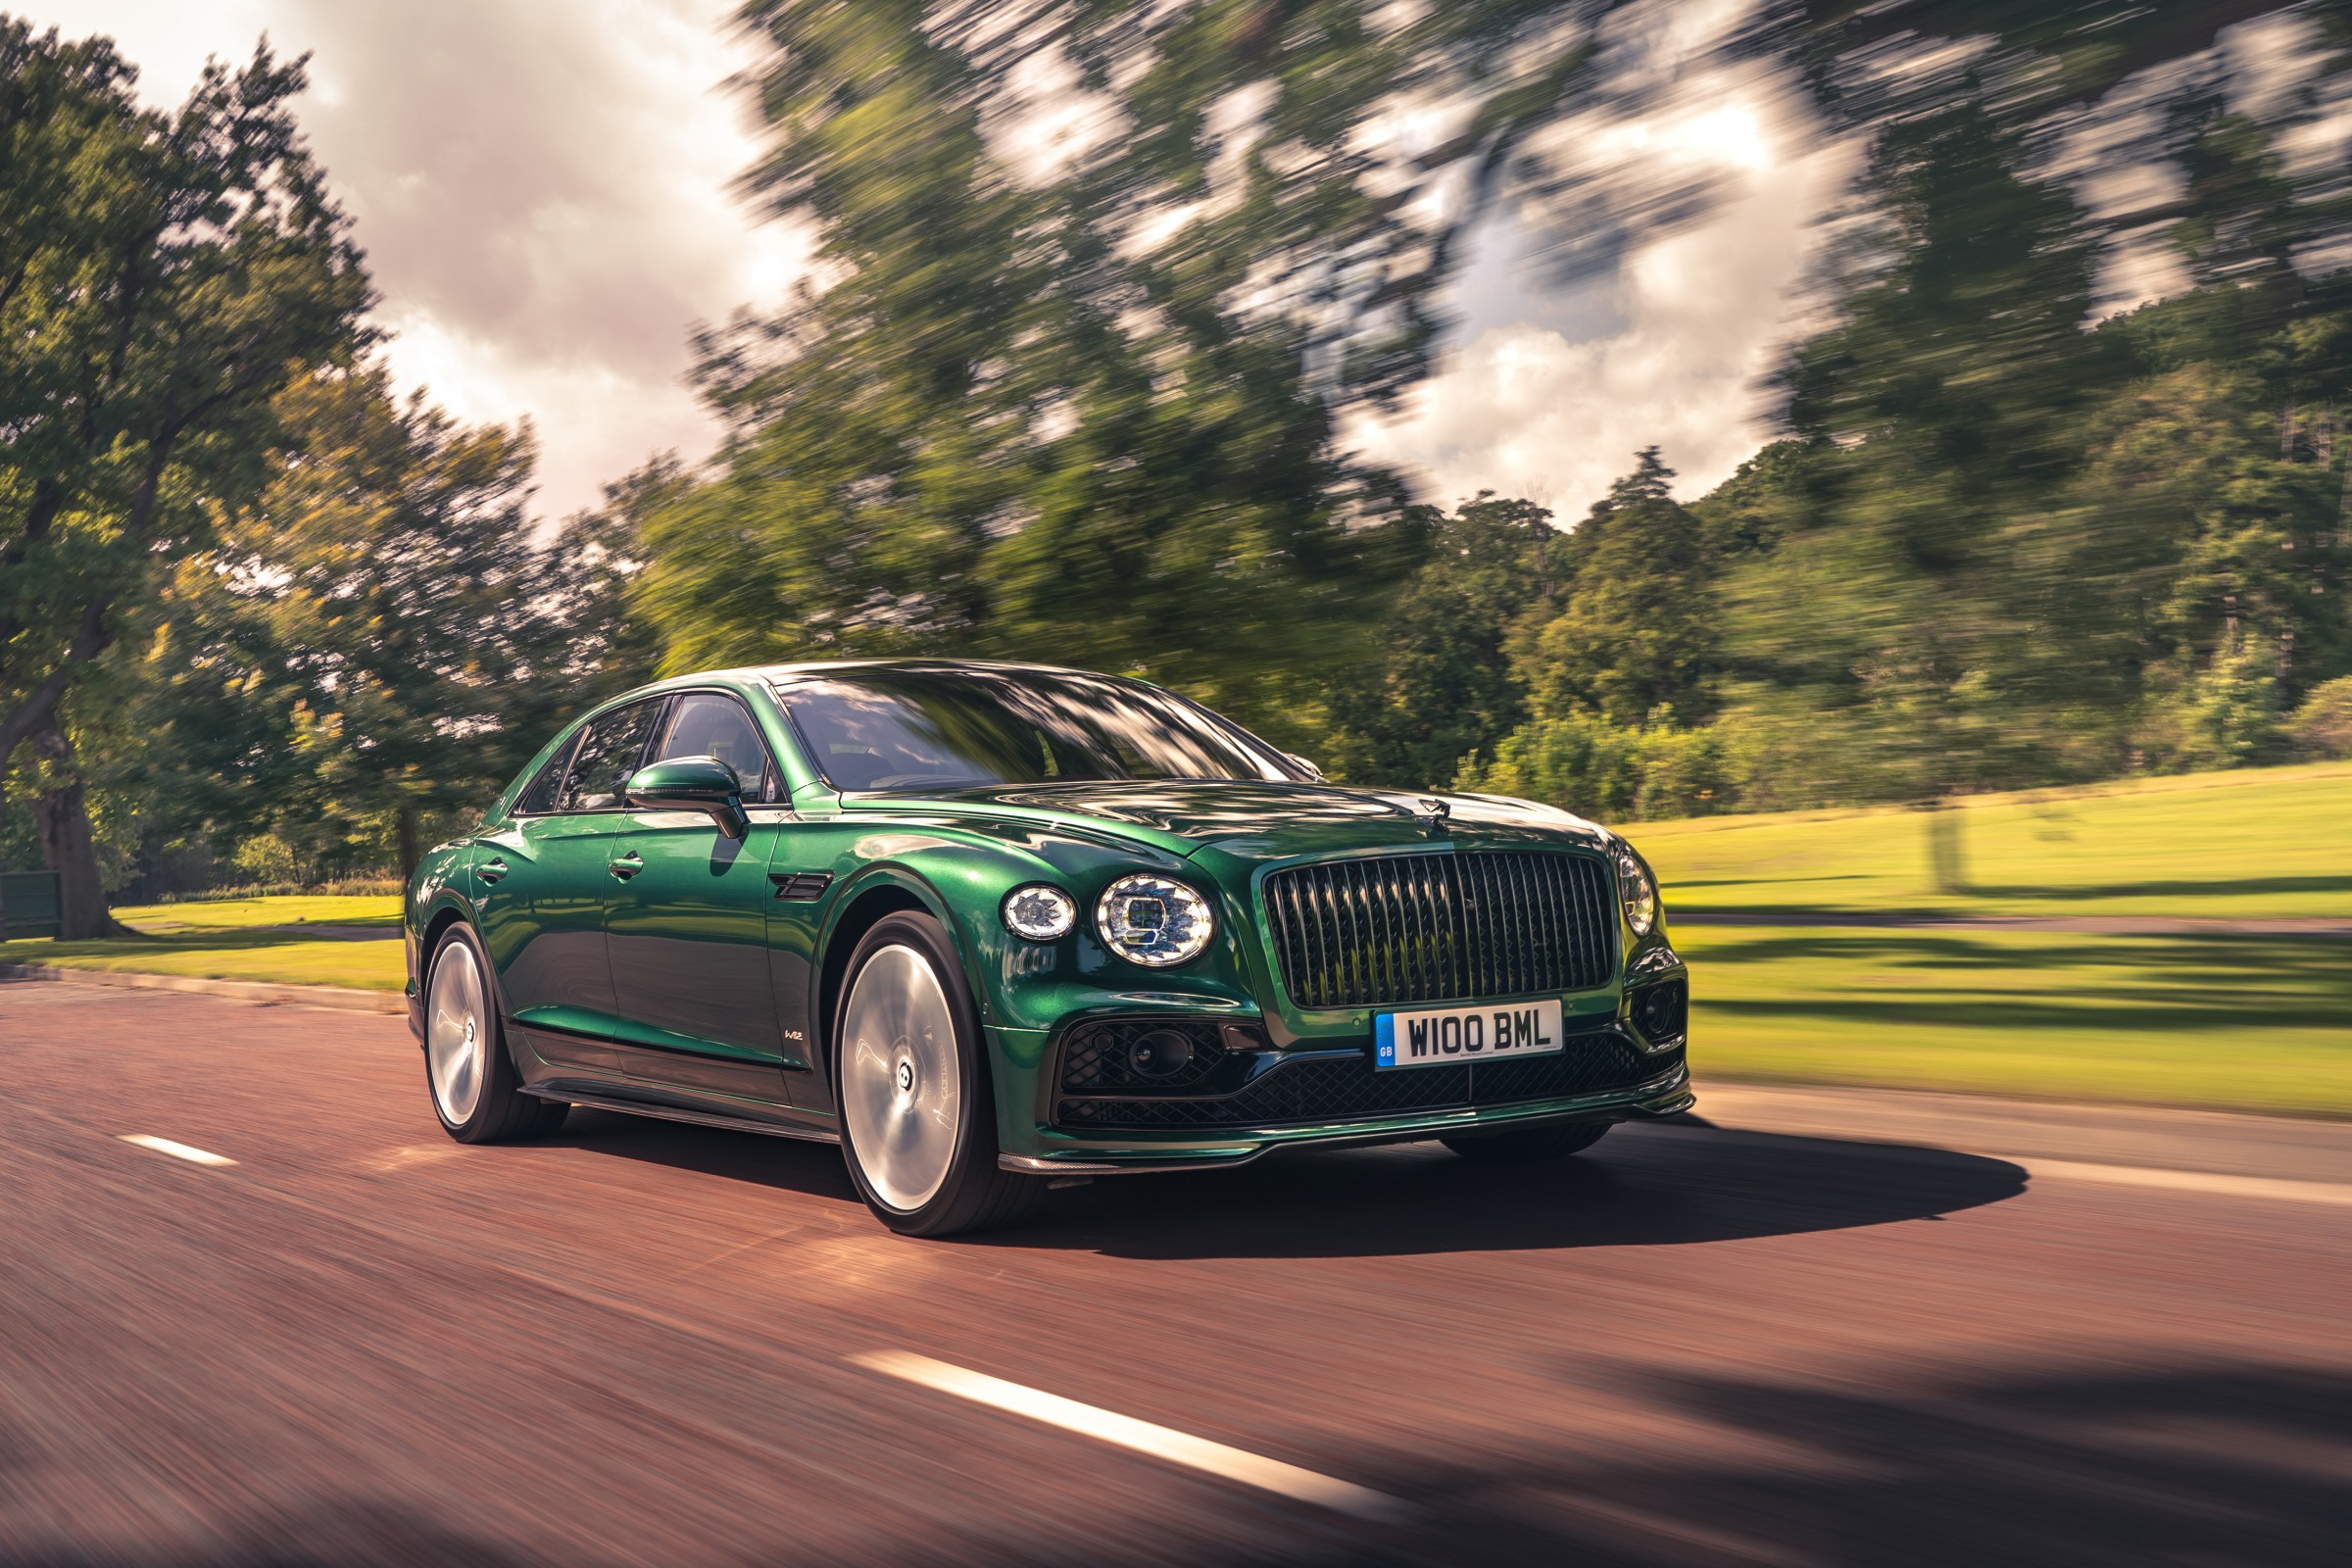 specs and price of 2021 Bentley Flying Spur in Nigeria